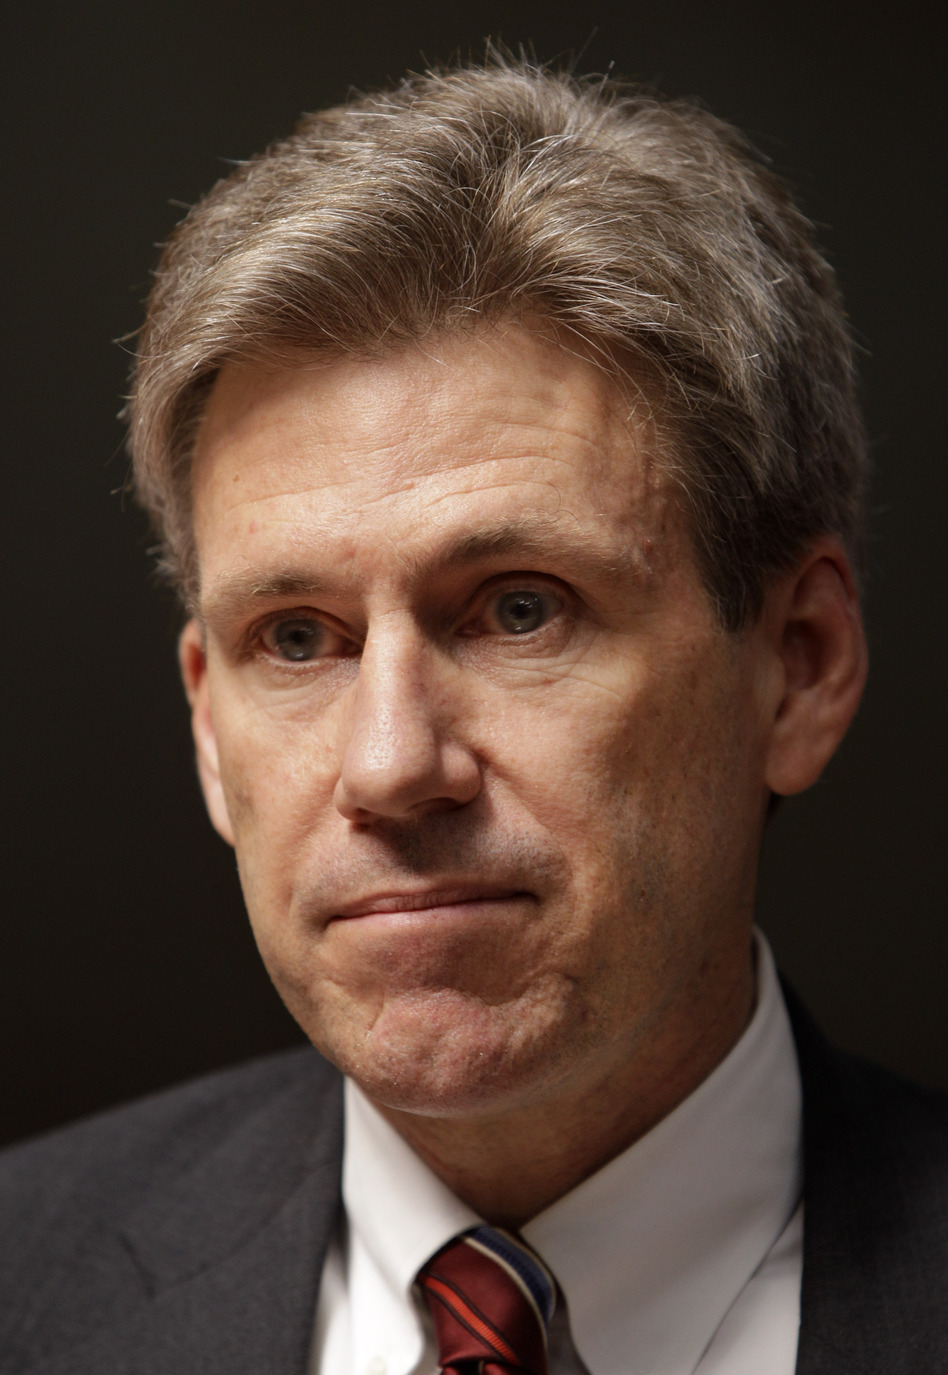 U.S. Ambassador to Libya Chris Stevens was killed in an attack against the American consulate in Benghazi on Sept. 11. CNN recovered Stevens' diary in the ruins of the consulate and used it in its reporting without obtaining consent from his family. (Ben Curtis/AP)